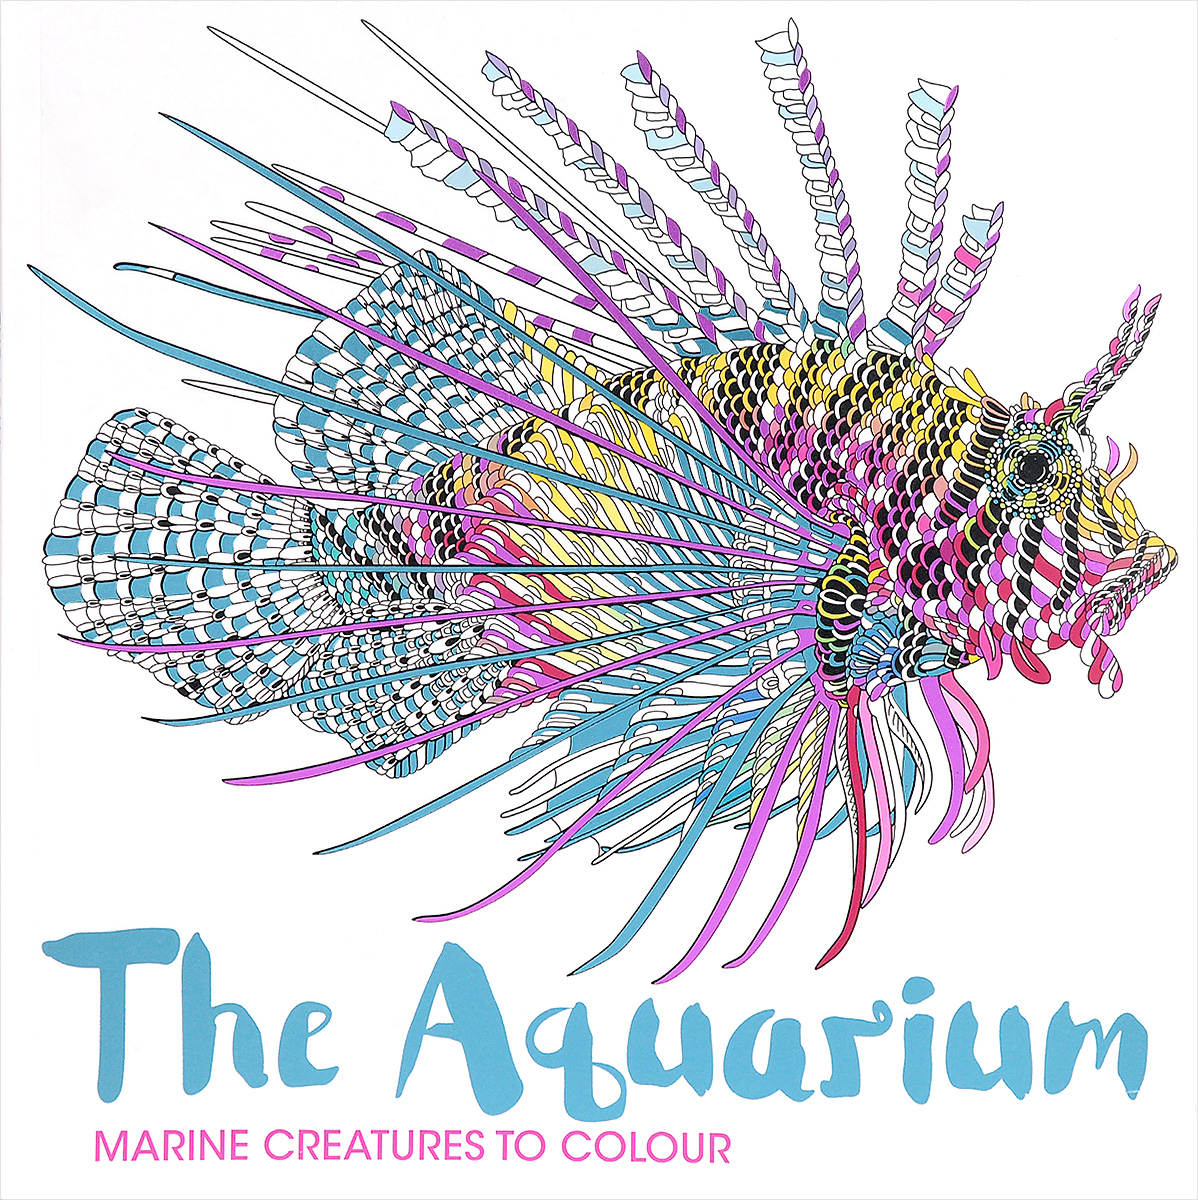 The Aquarium: Marine creatures to colour mr froger carcharodon megalodon model giant tooth shark sphyrna aquatic creatures wild animals zoo modeling plastic sea lift toy